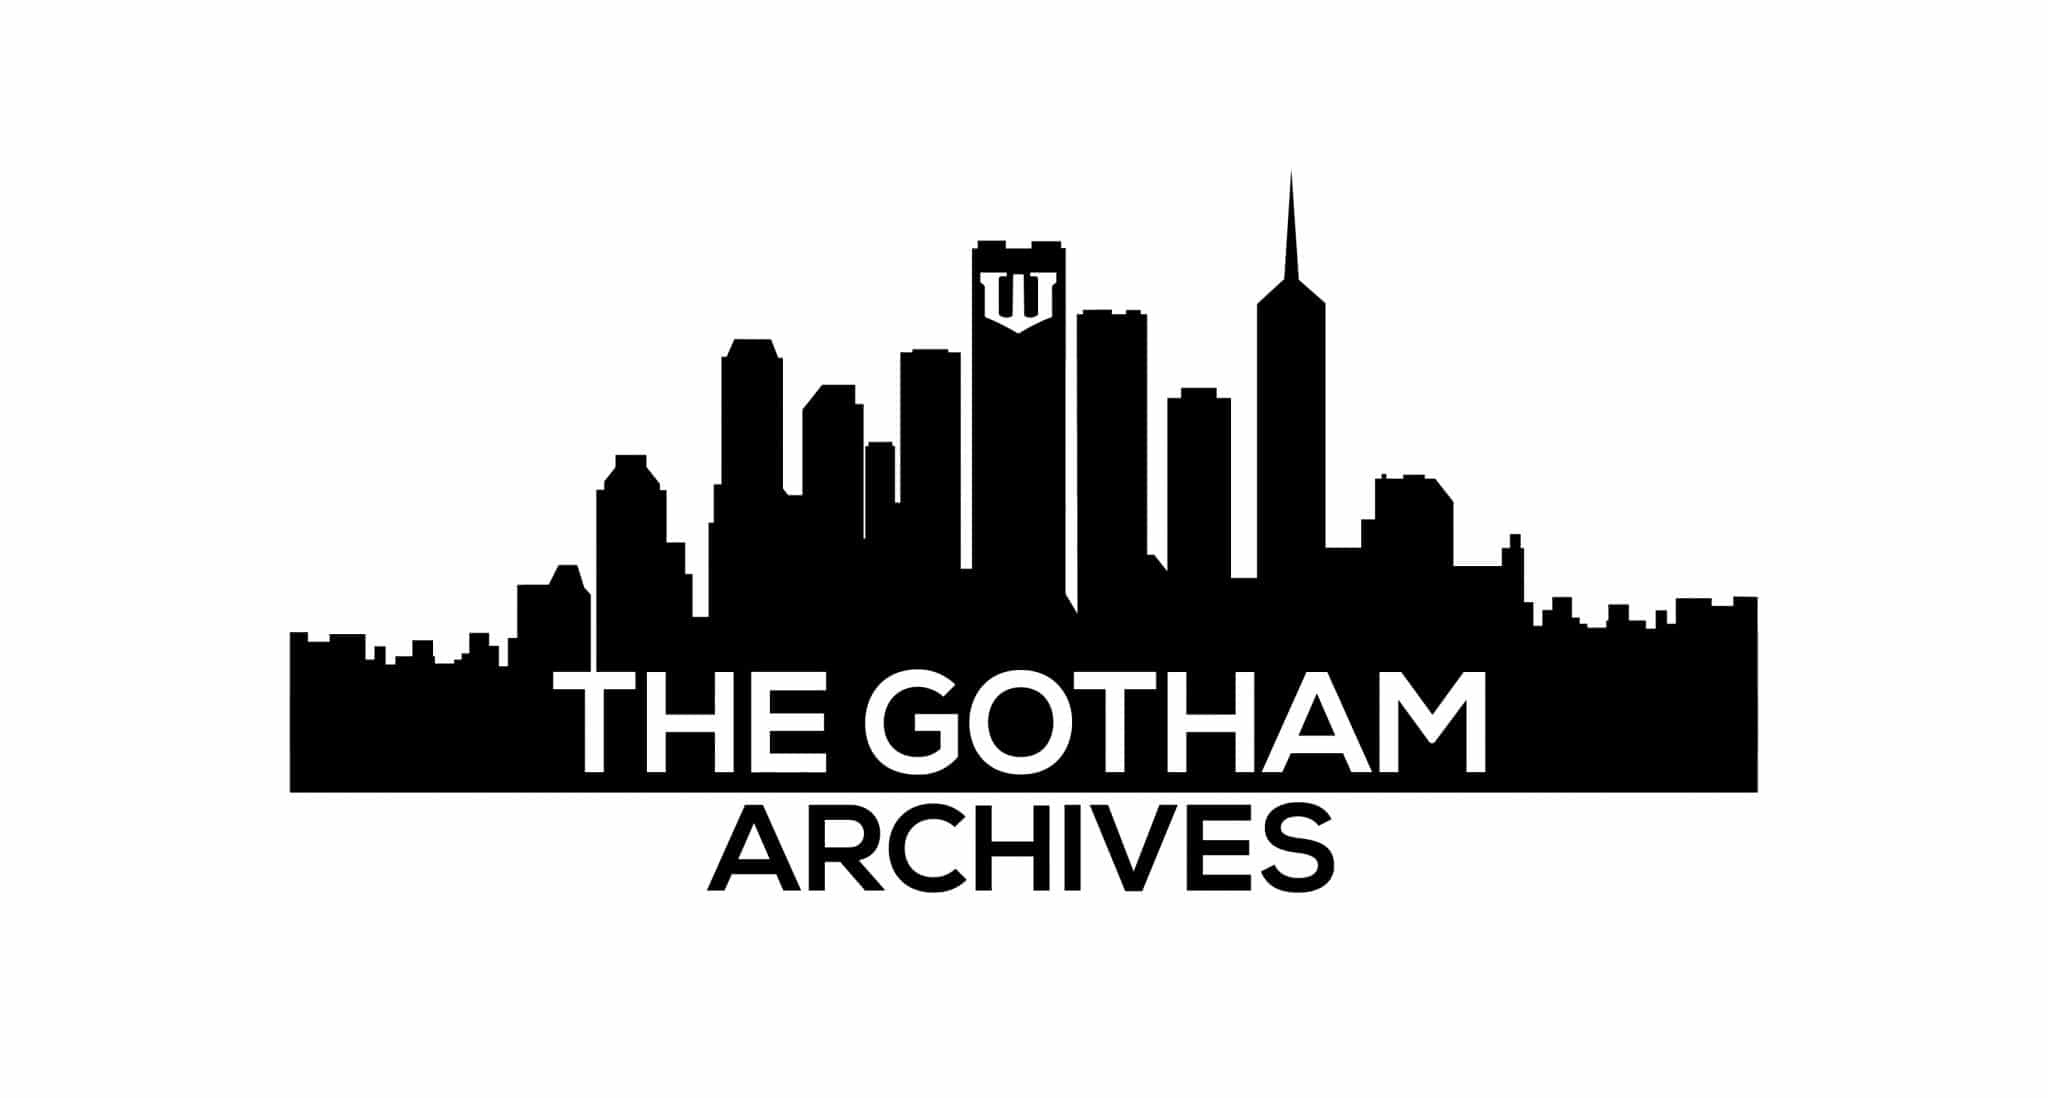 The Gotham Archives